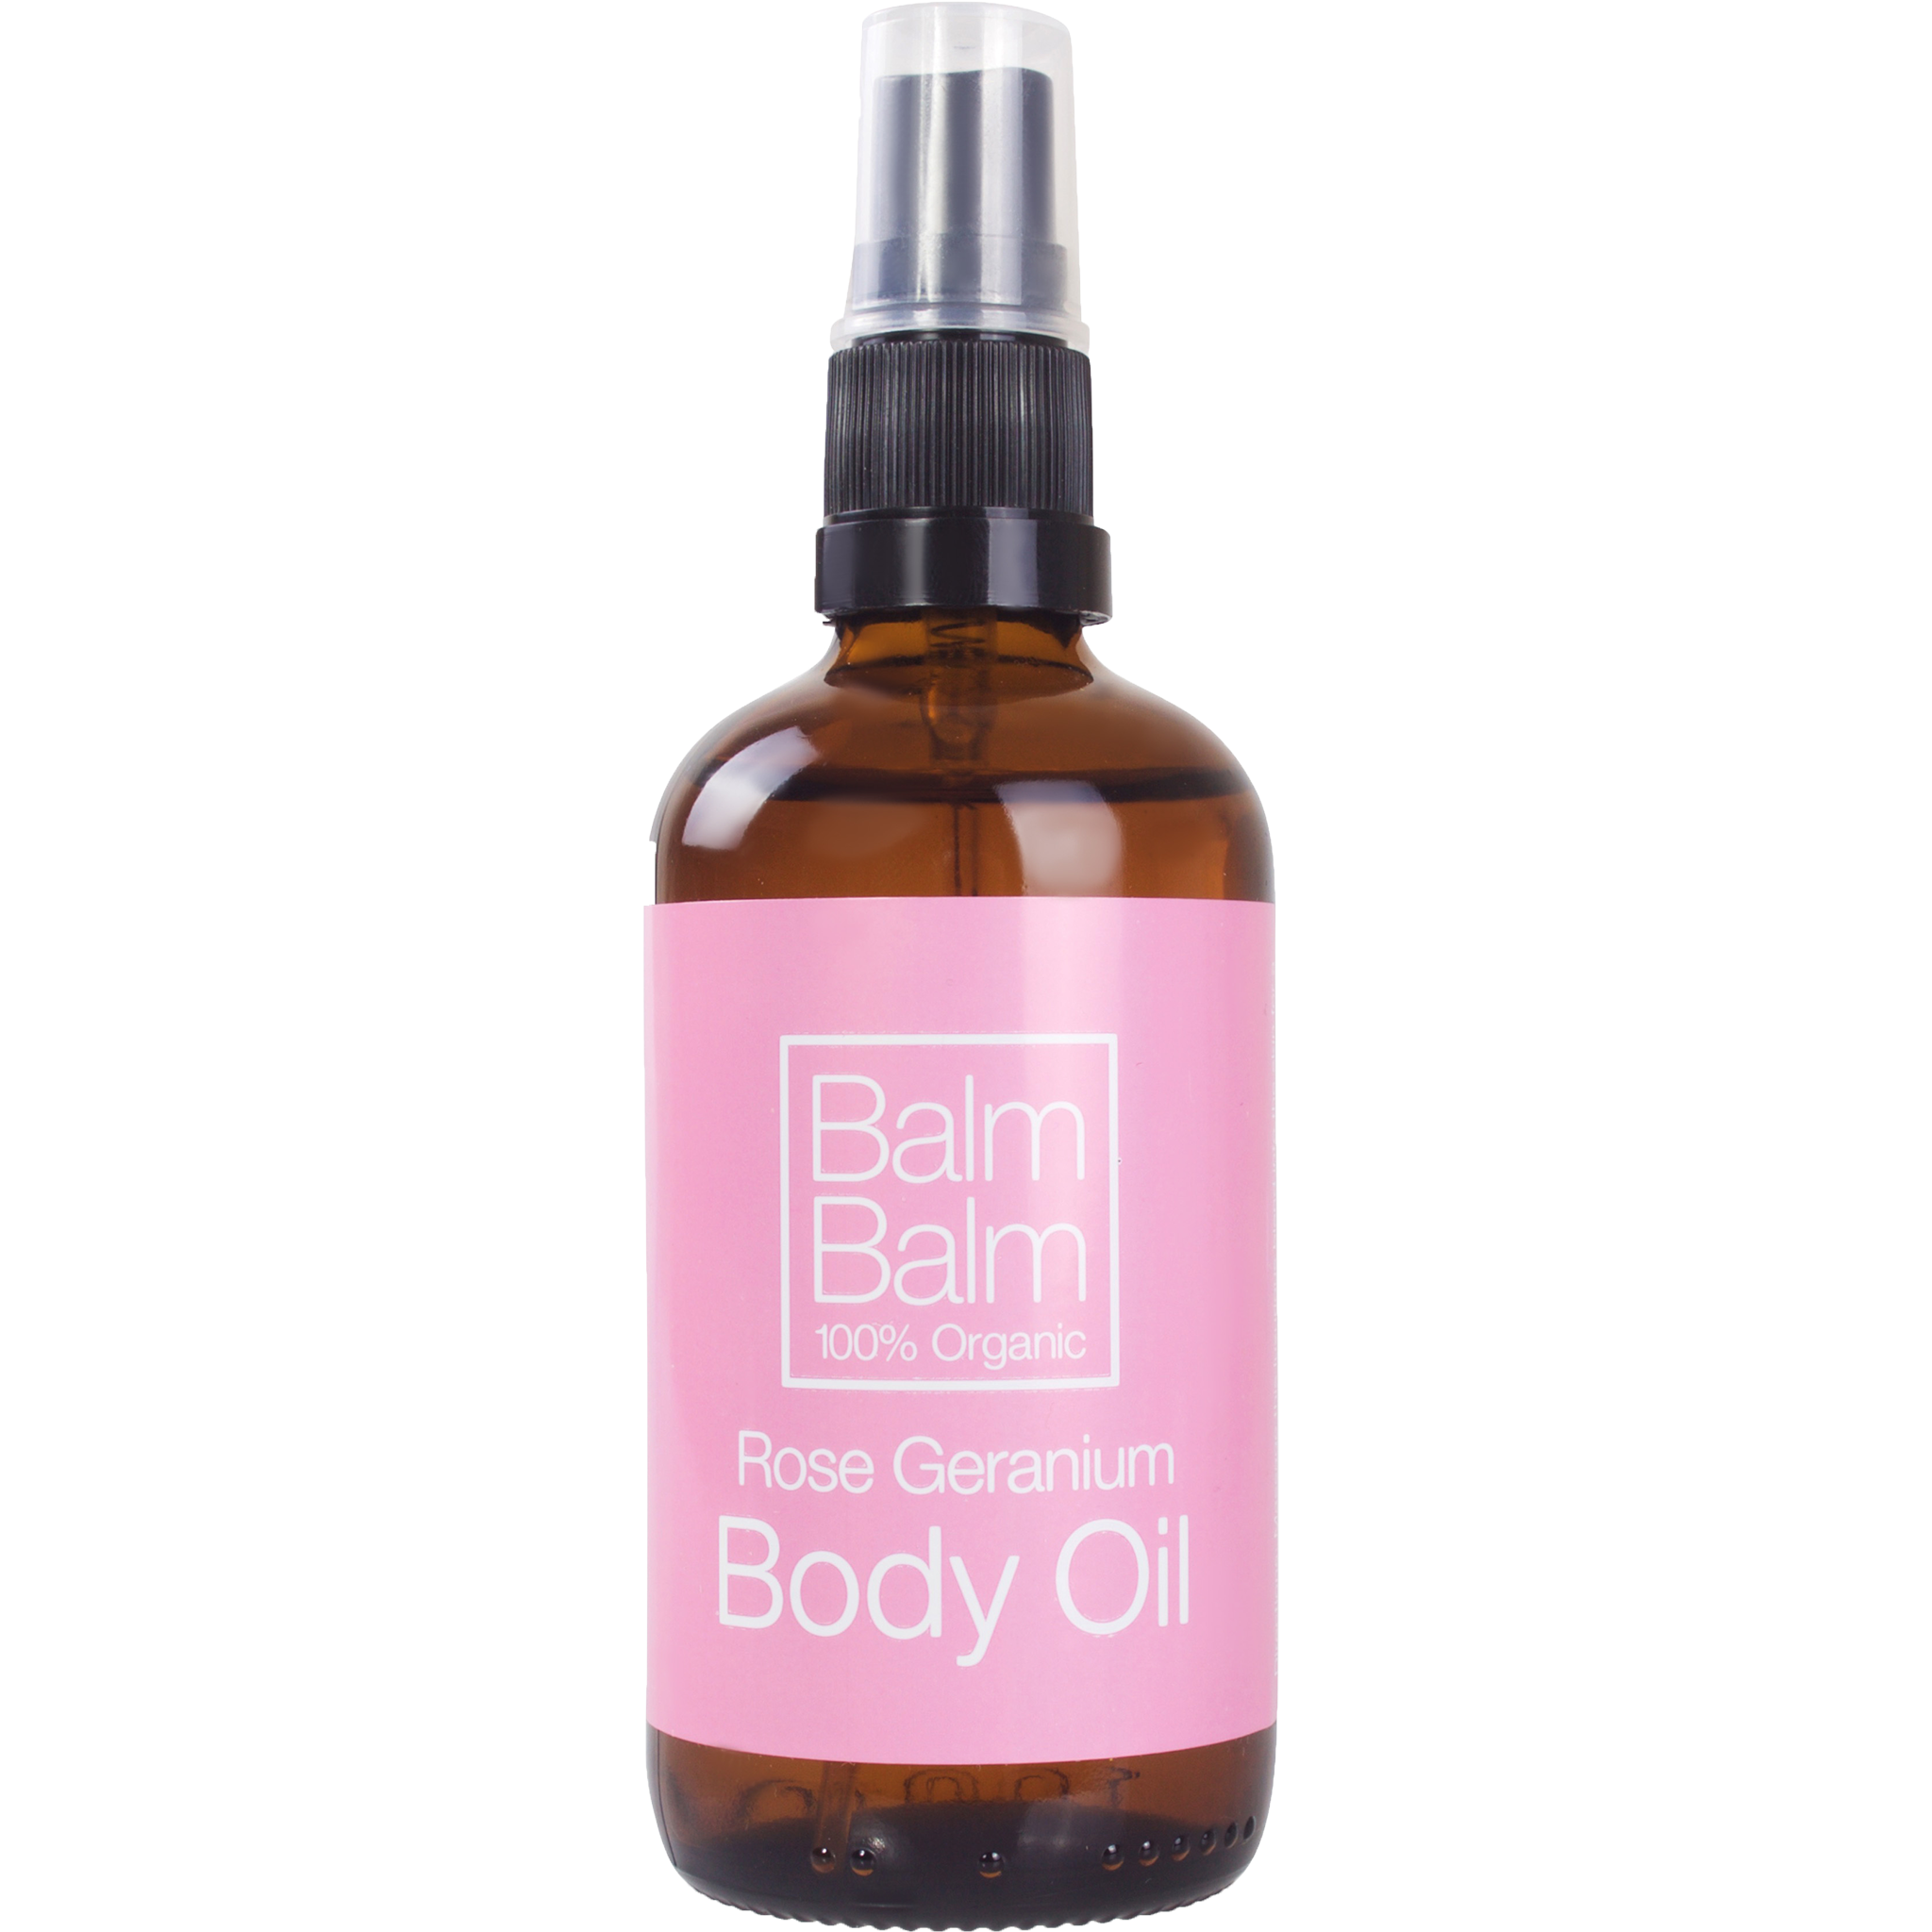 Rose Geranium Body Oil